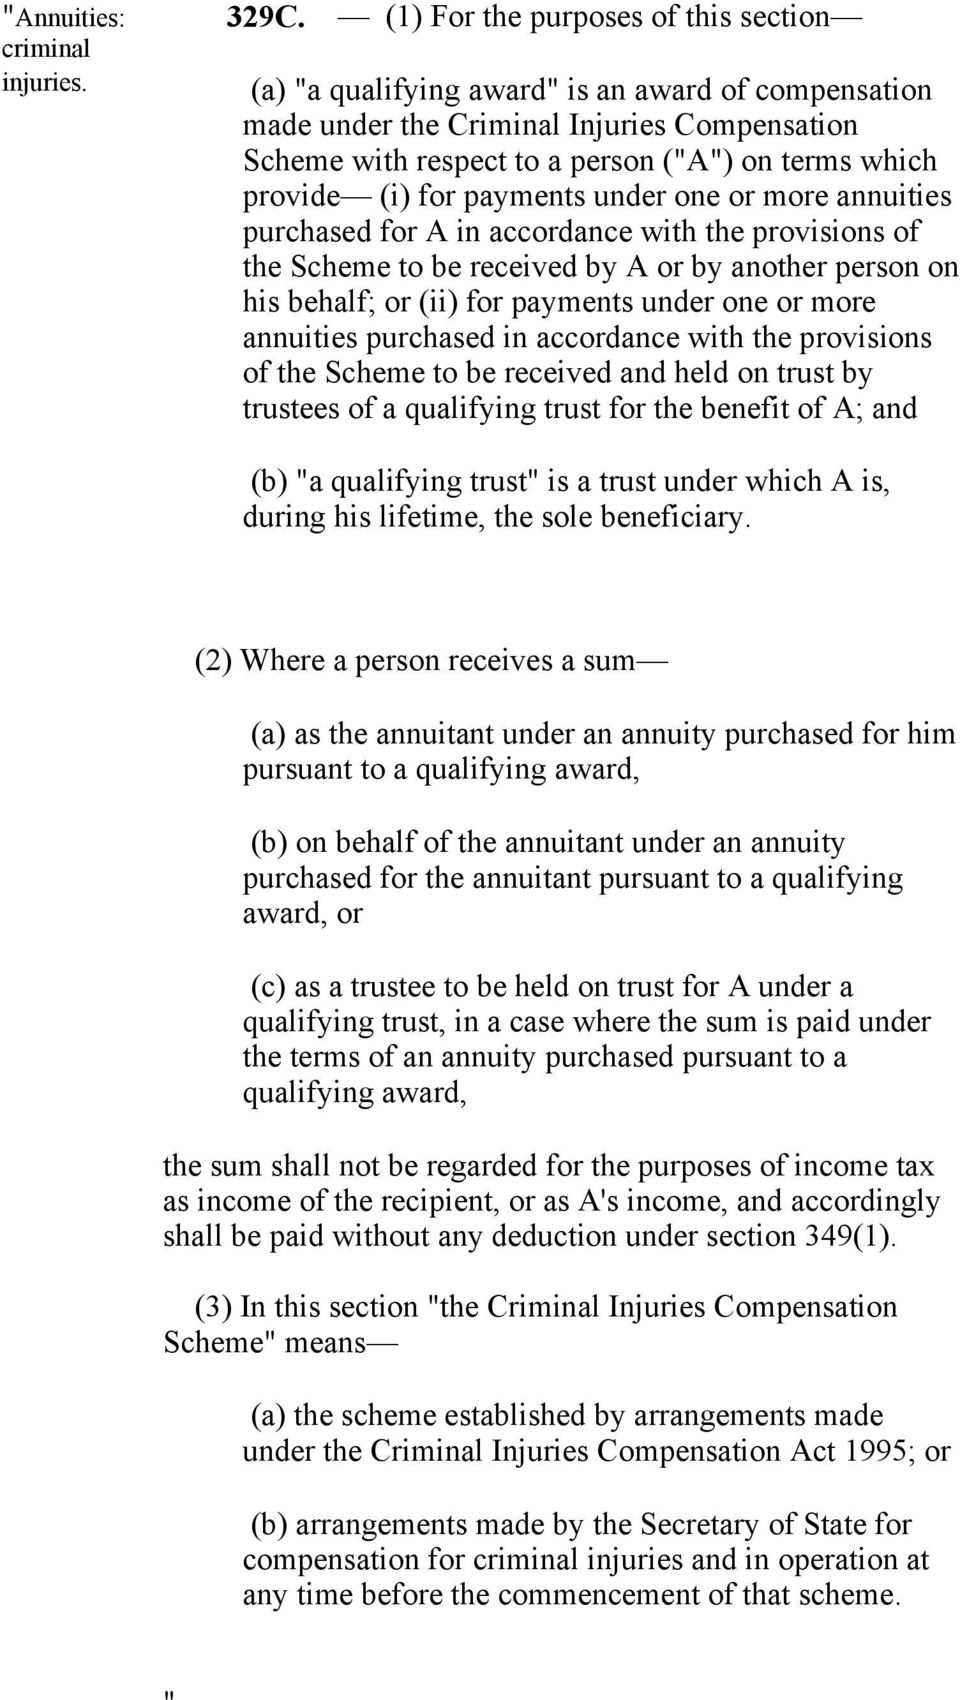 (i) for payments under one or more annuities purchased for A in accordance with the provisions of the Scheme to be received by A or by another person on his behalf; or (ii) for payments under one or